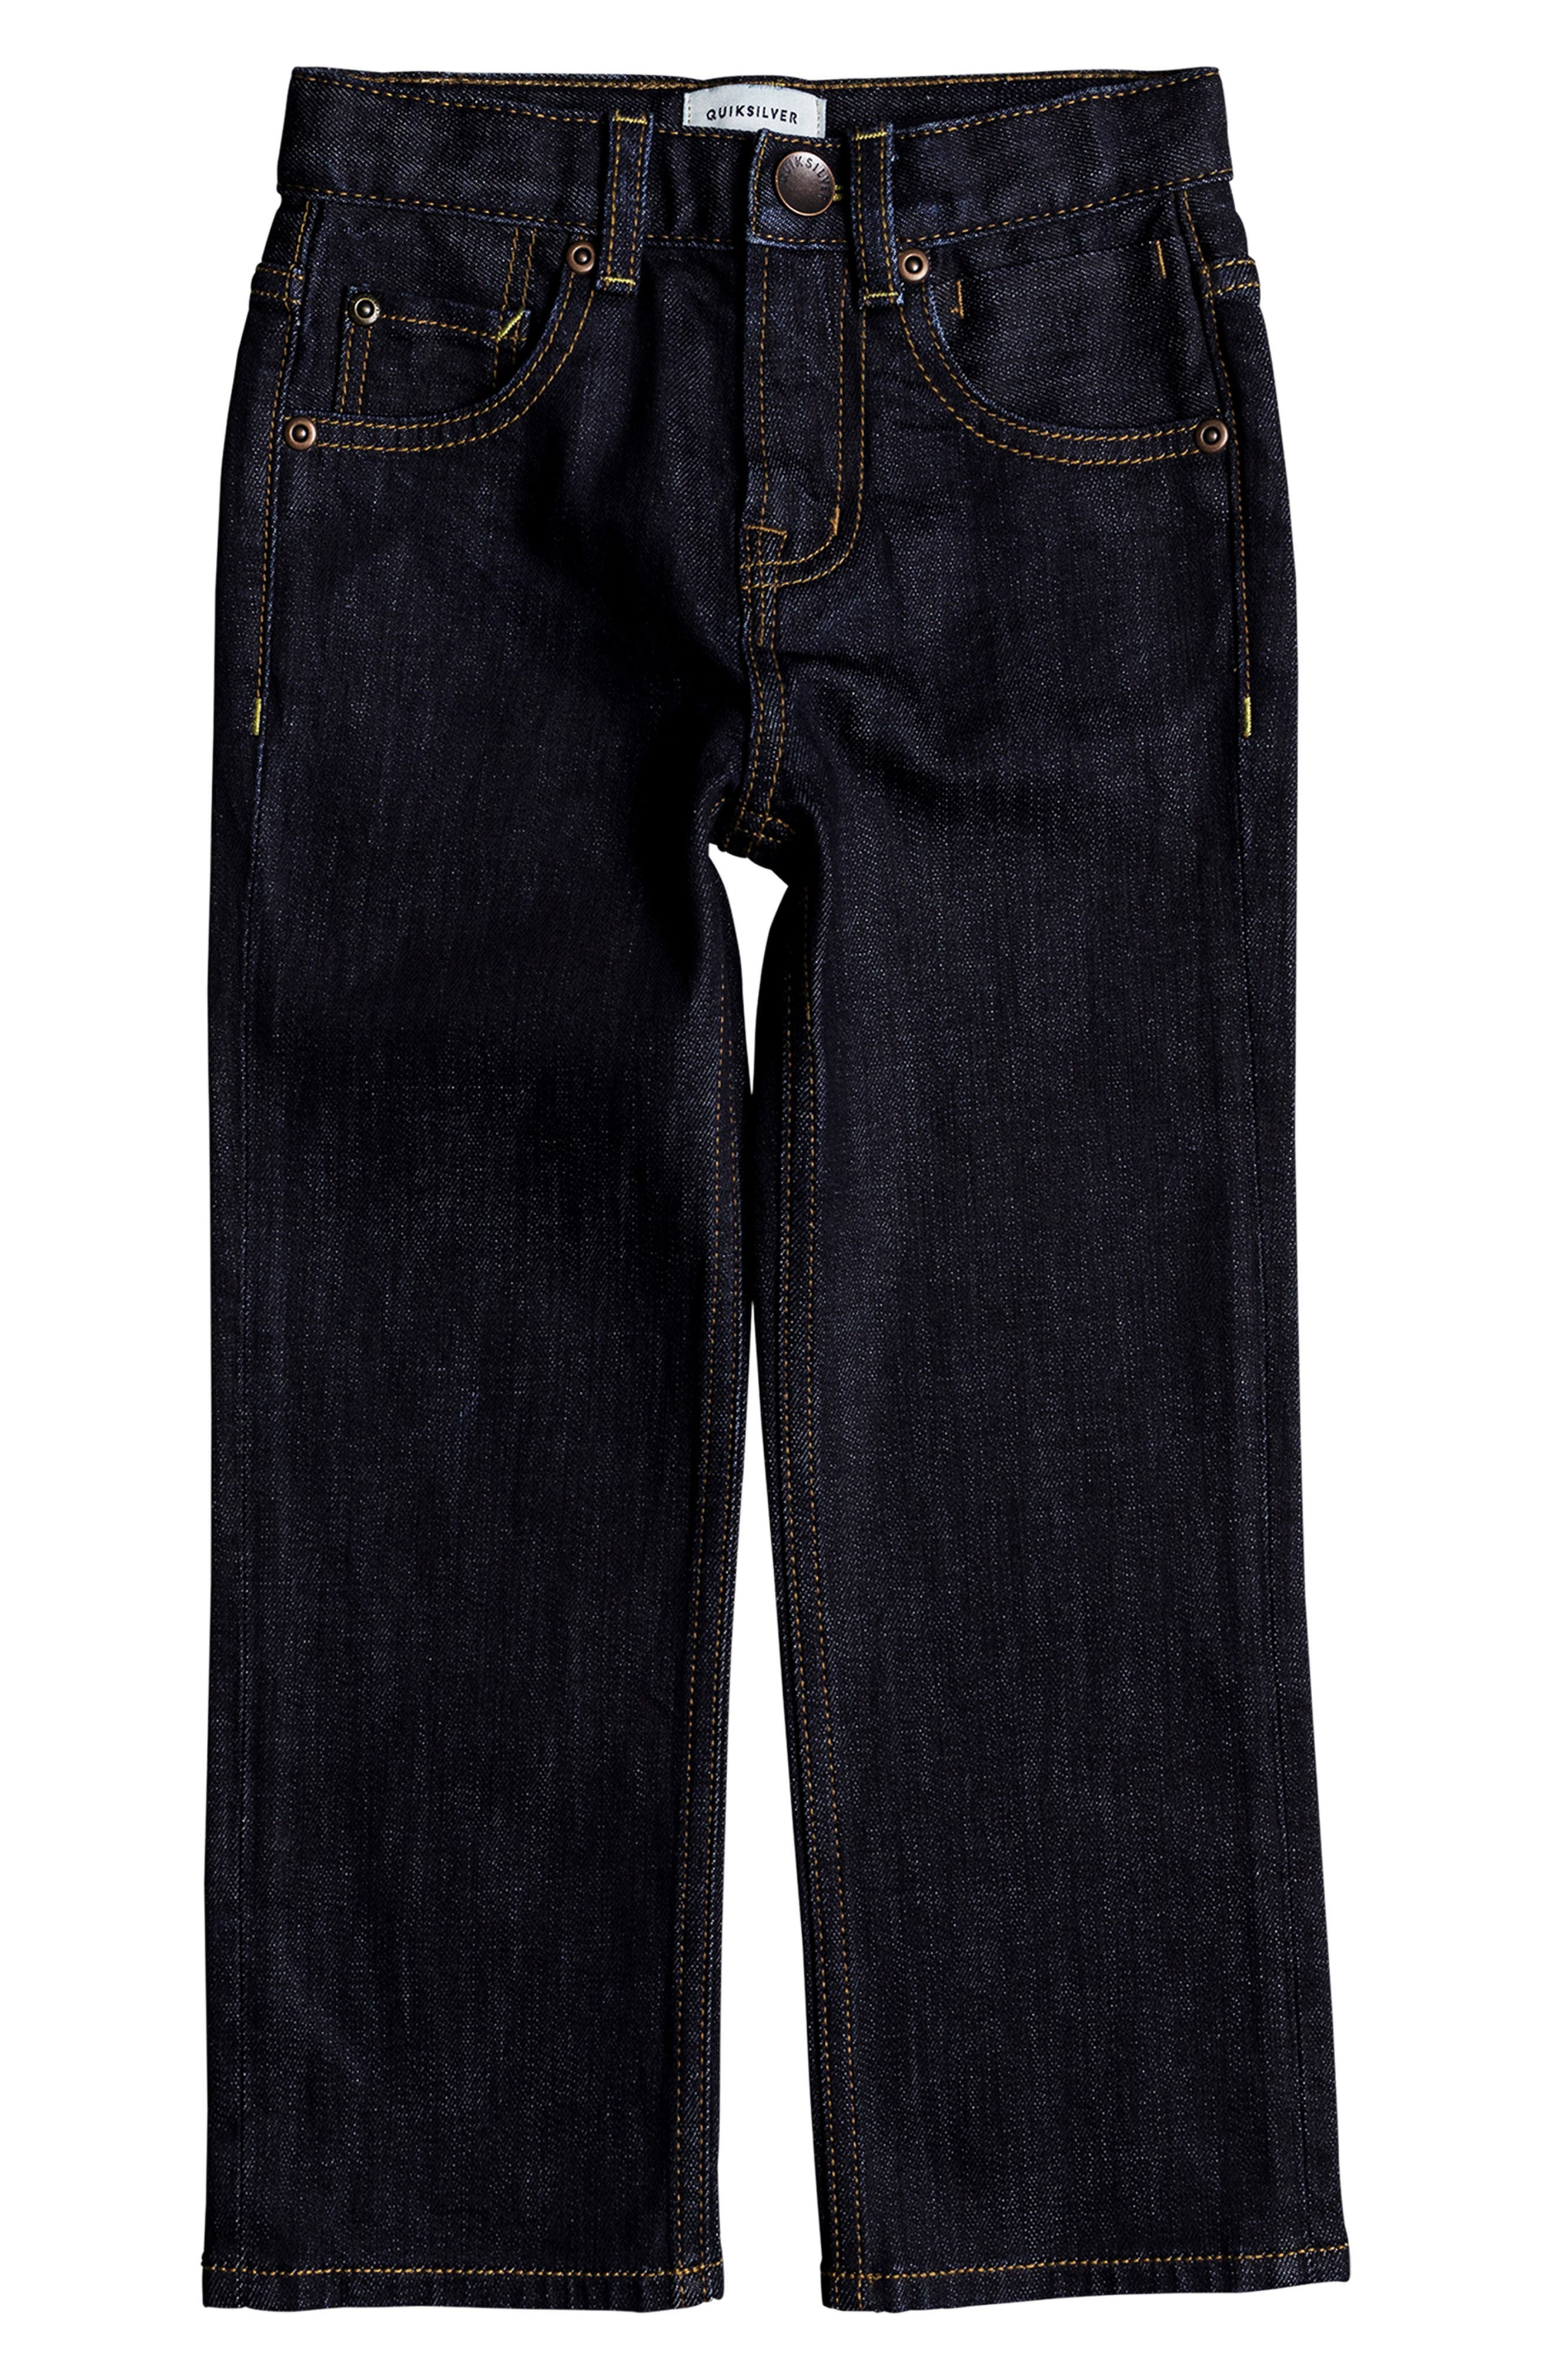 Sequel Rinse Jeans,                             Main thumbnail 1, color,                             RINSE